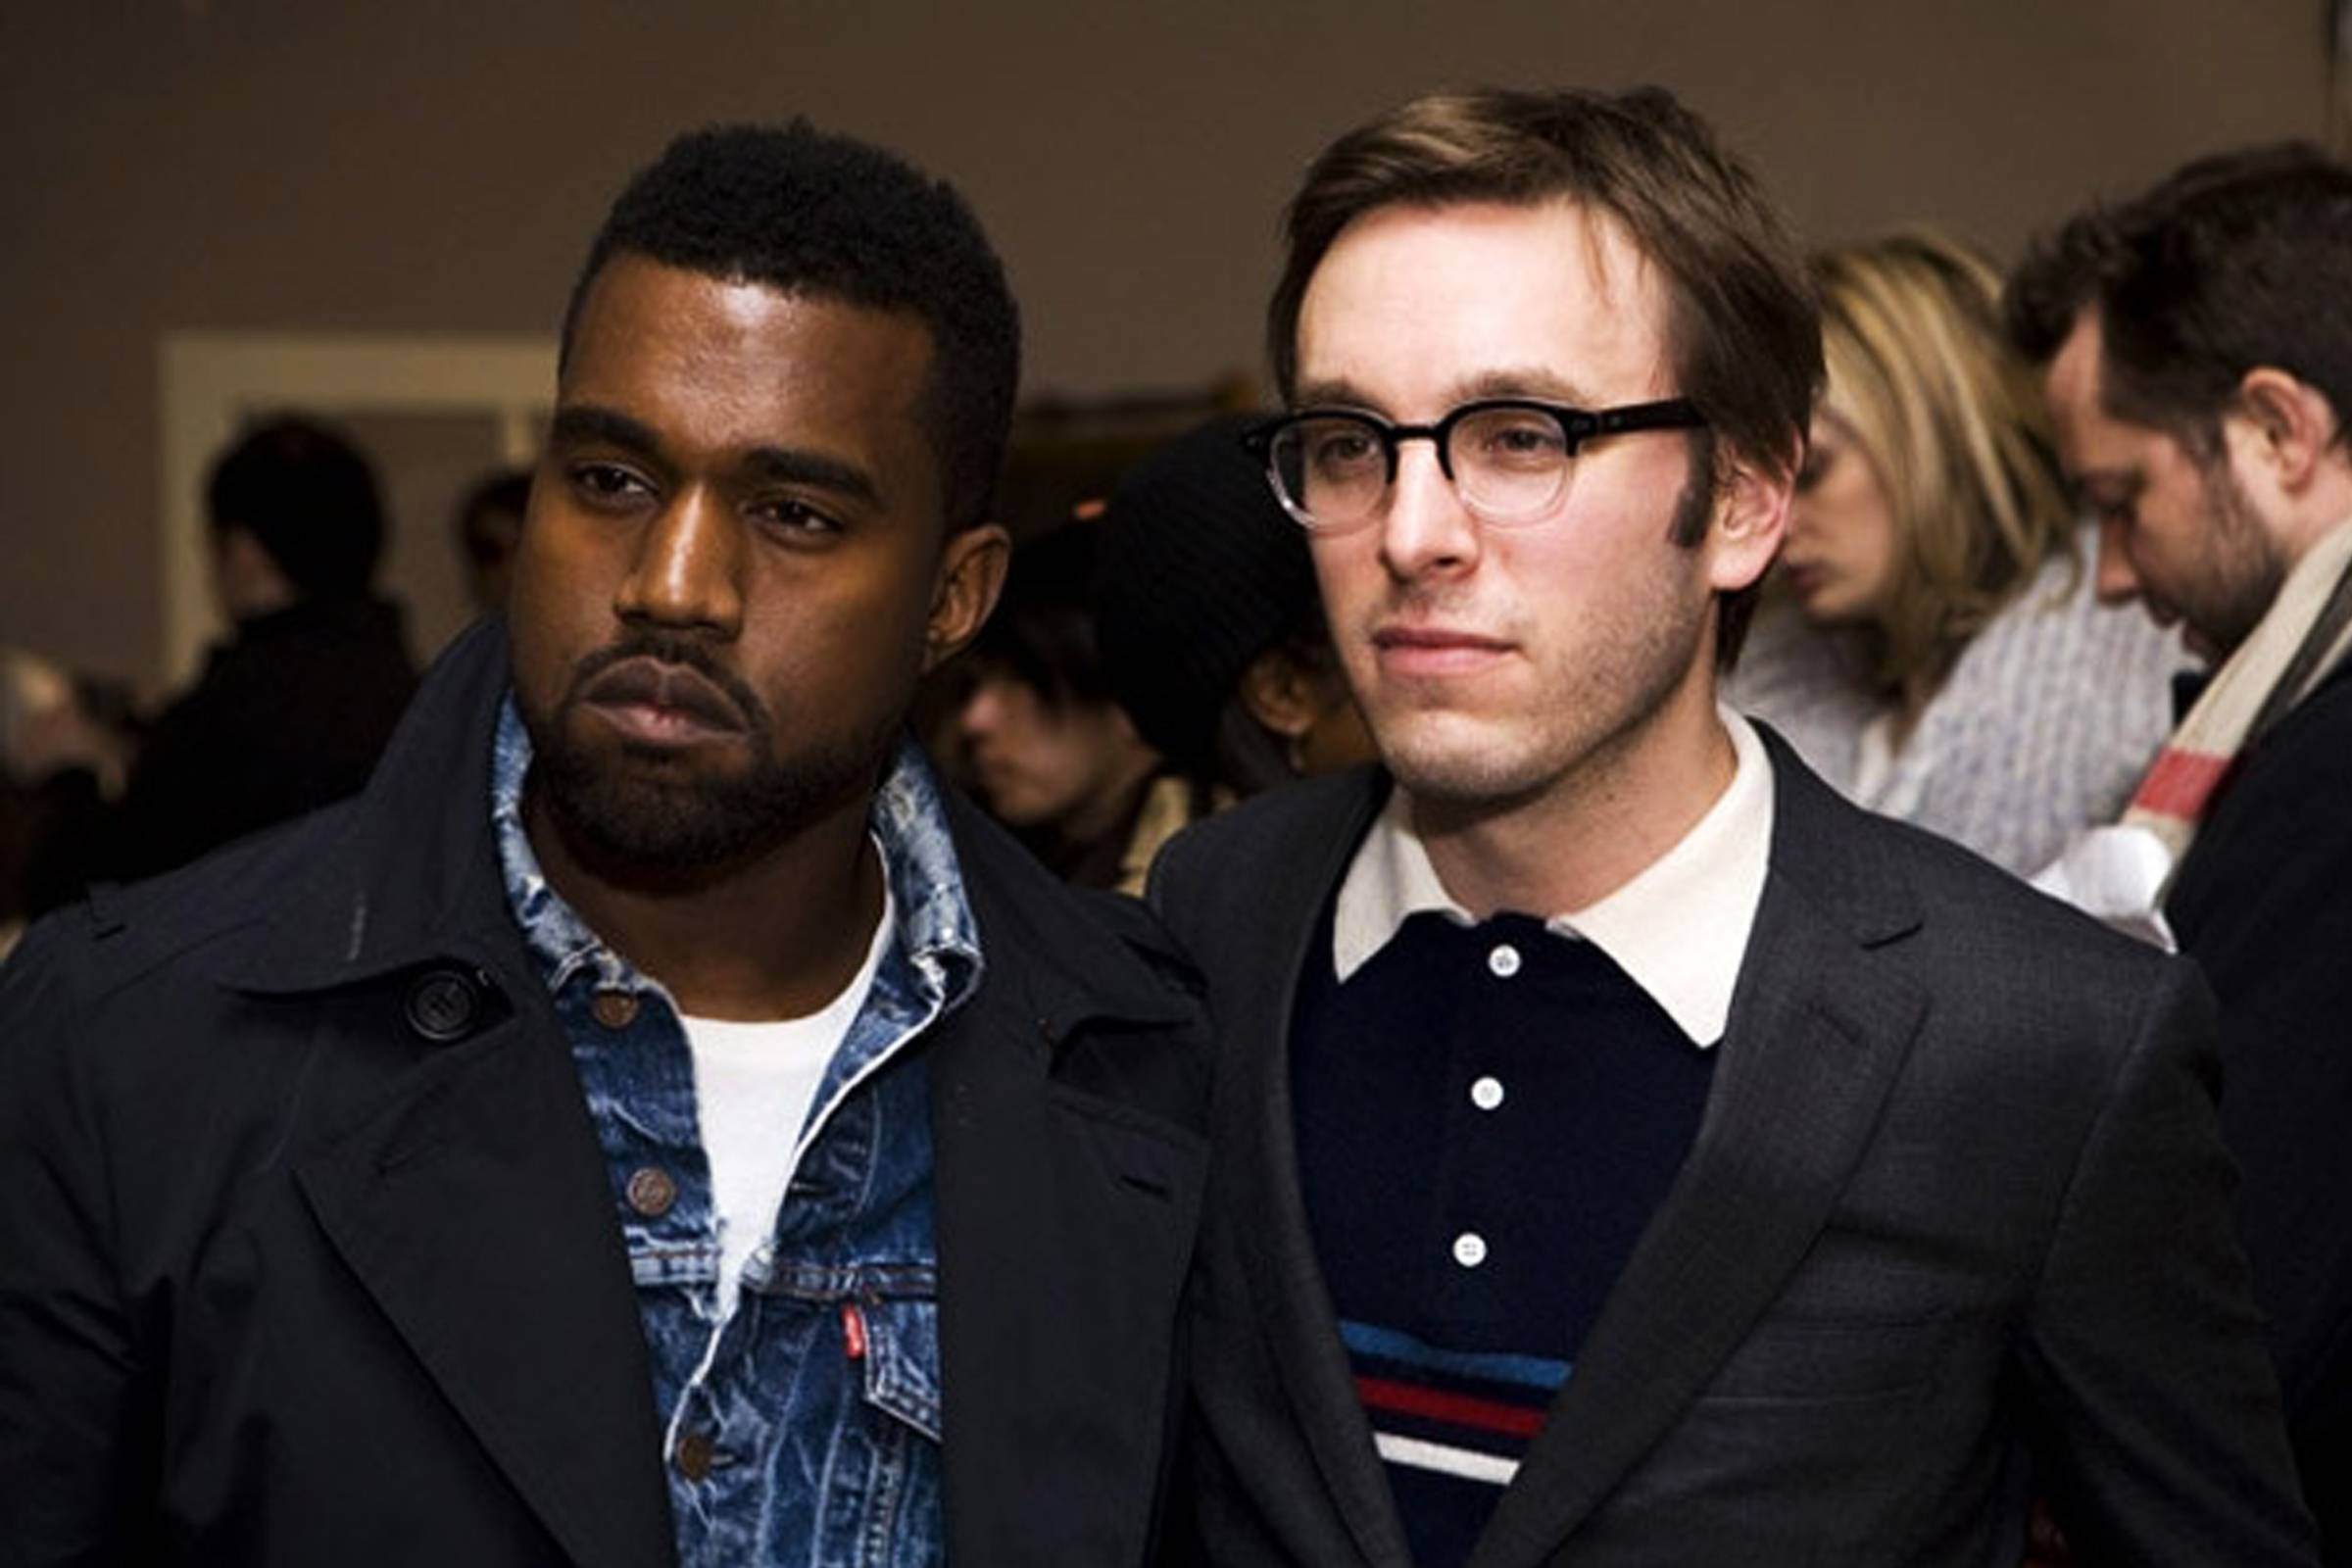 Kanye West and Scott Sternberg at Band of Outsiders' Fall/Winter 2009 runway show